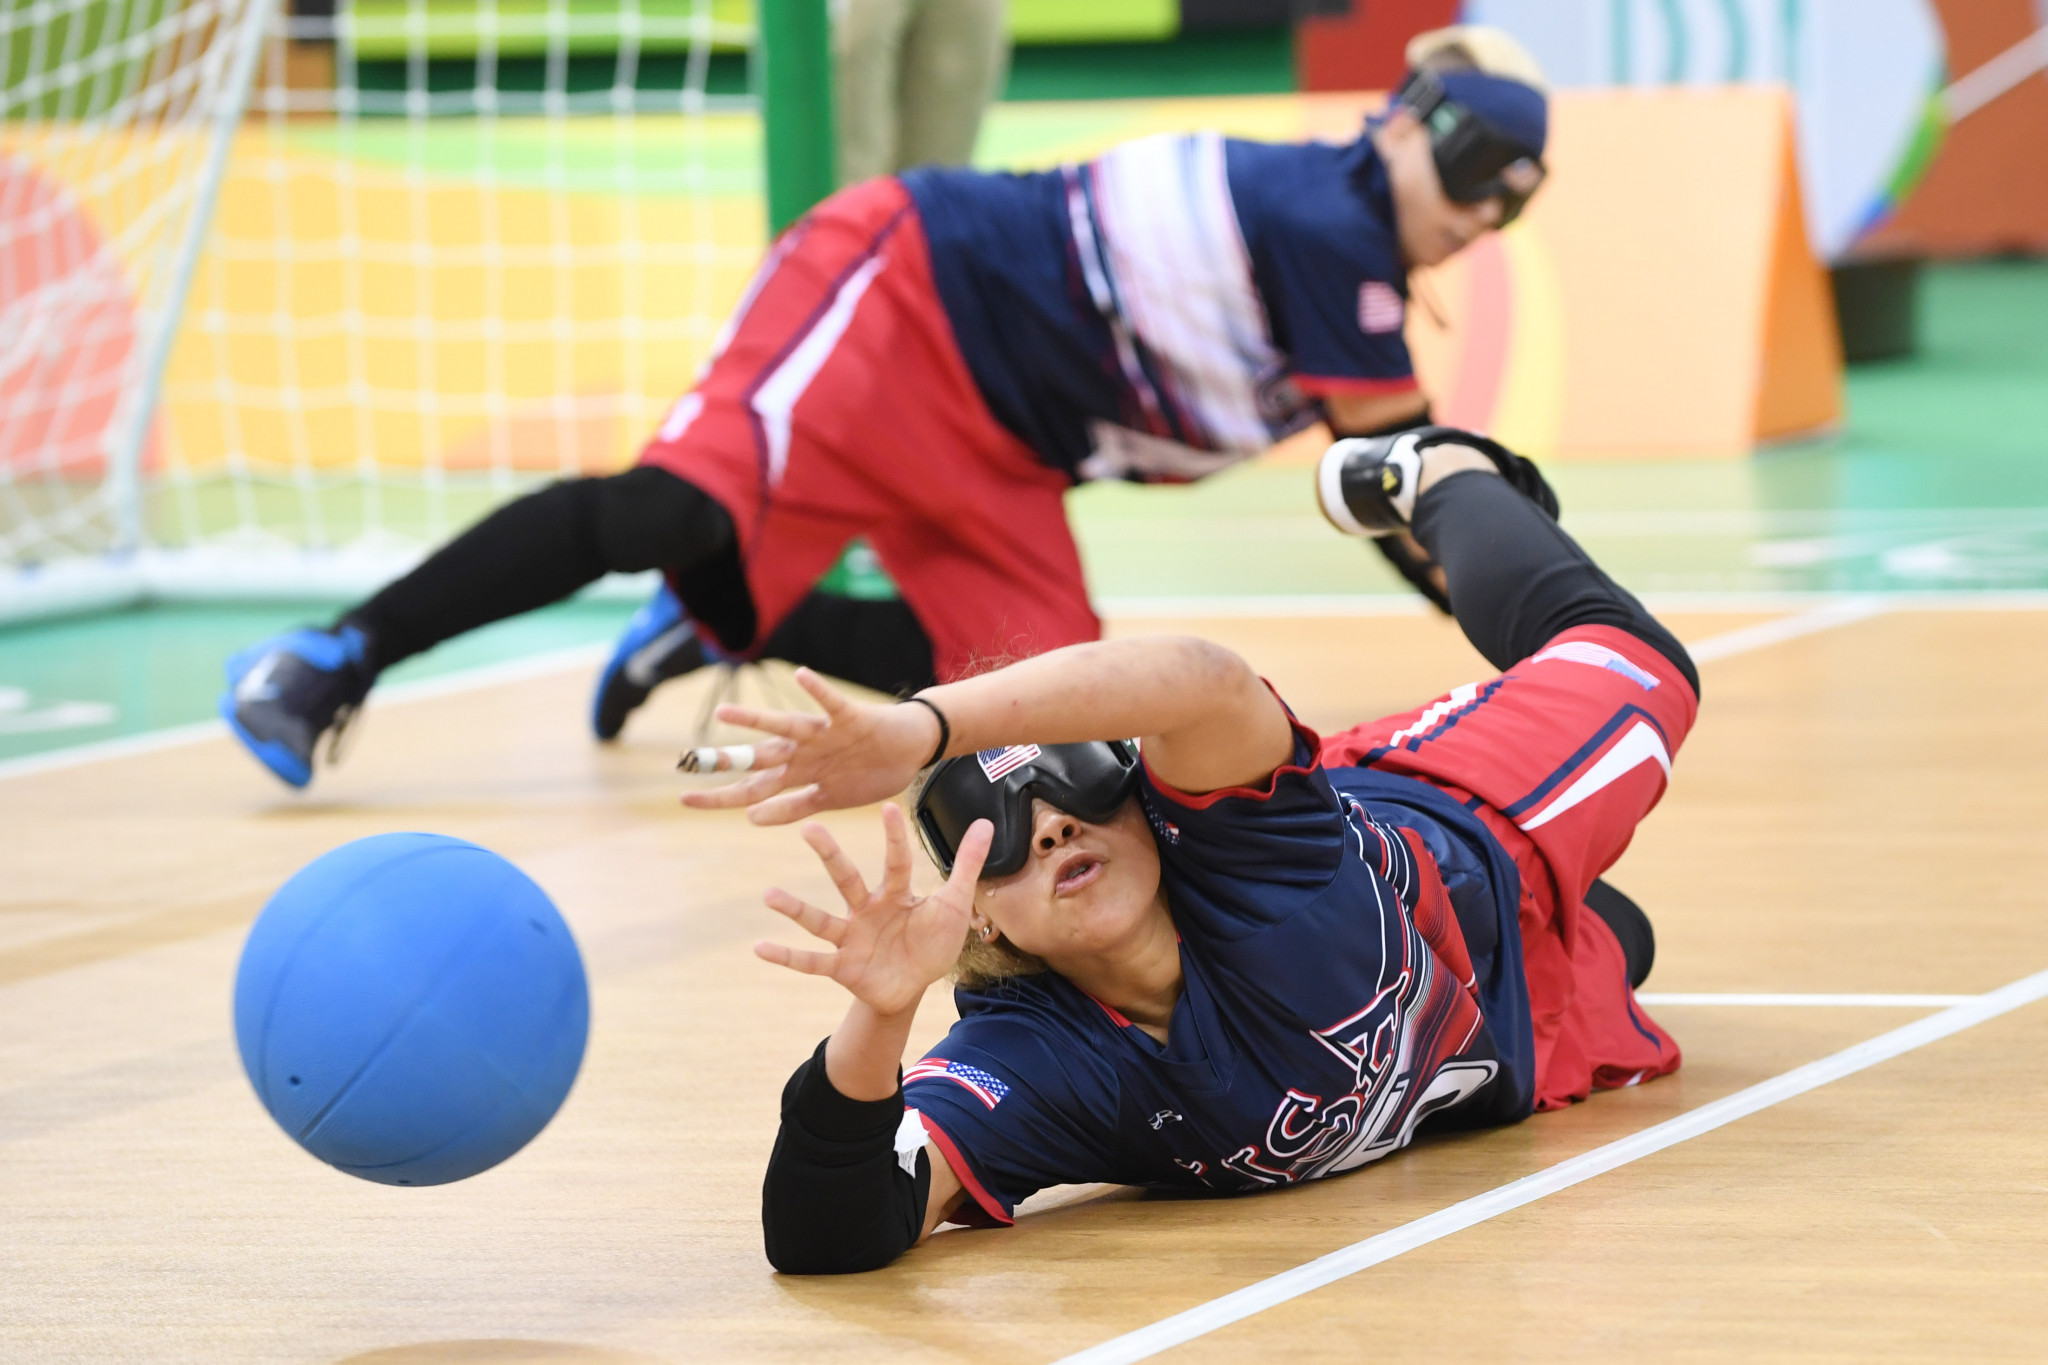 Ten men's teams and ten women's will compete in the Tokyo 2020 goalball tournaments ©Getty Images